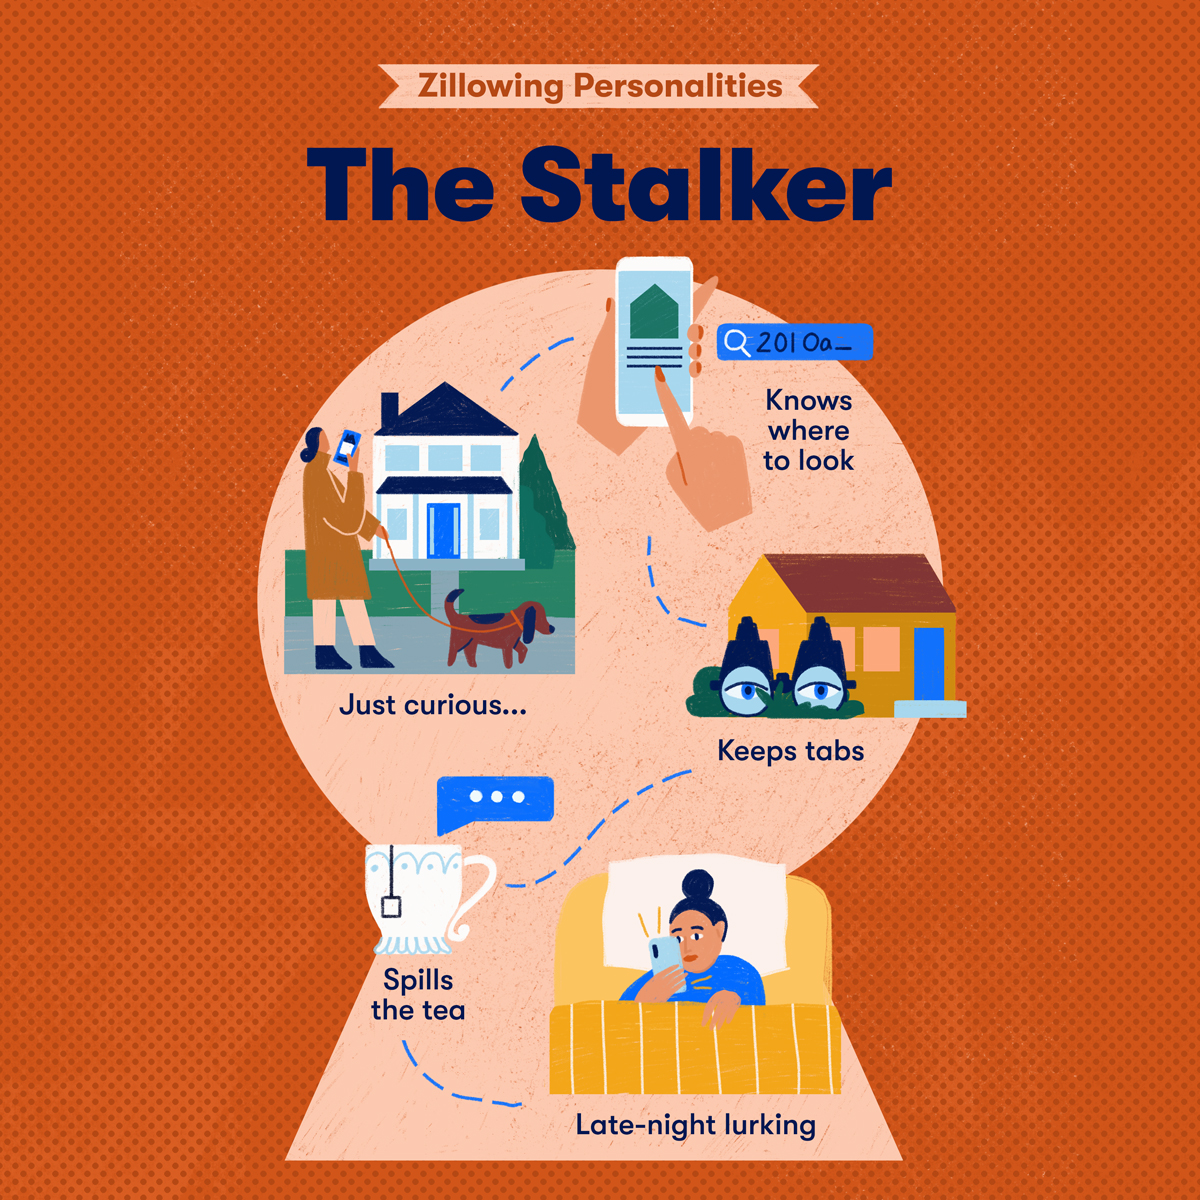 The Stalker: The one who can't stop browsing homes at all hours of the night